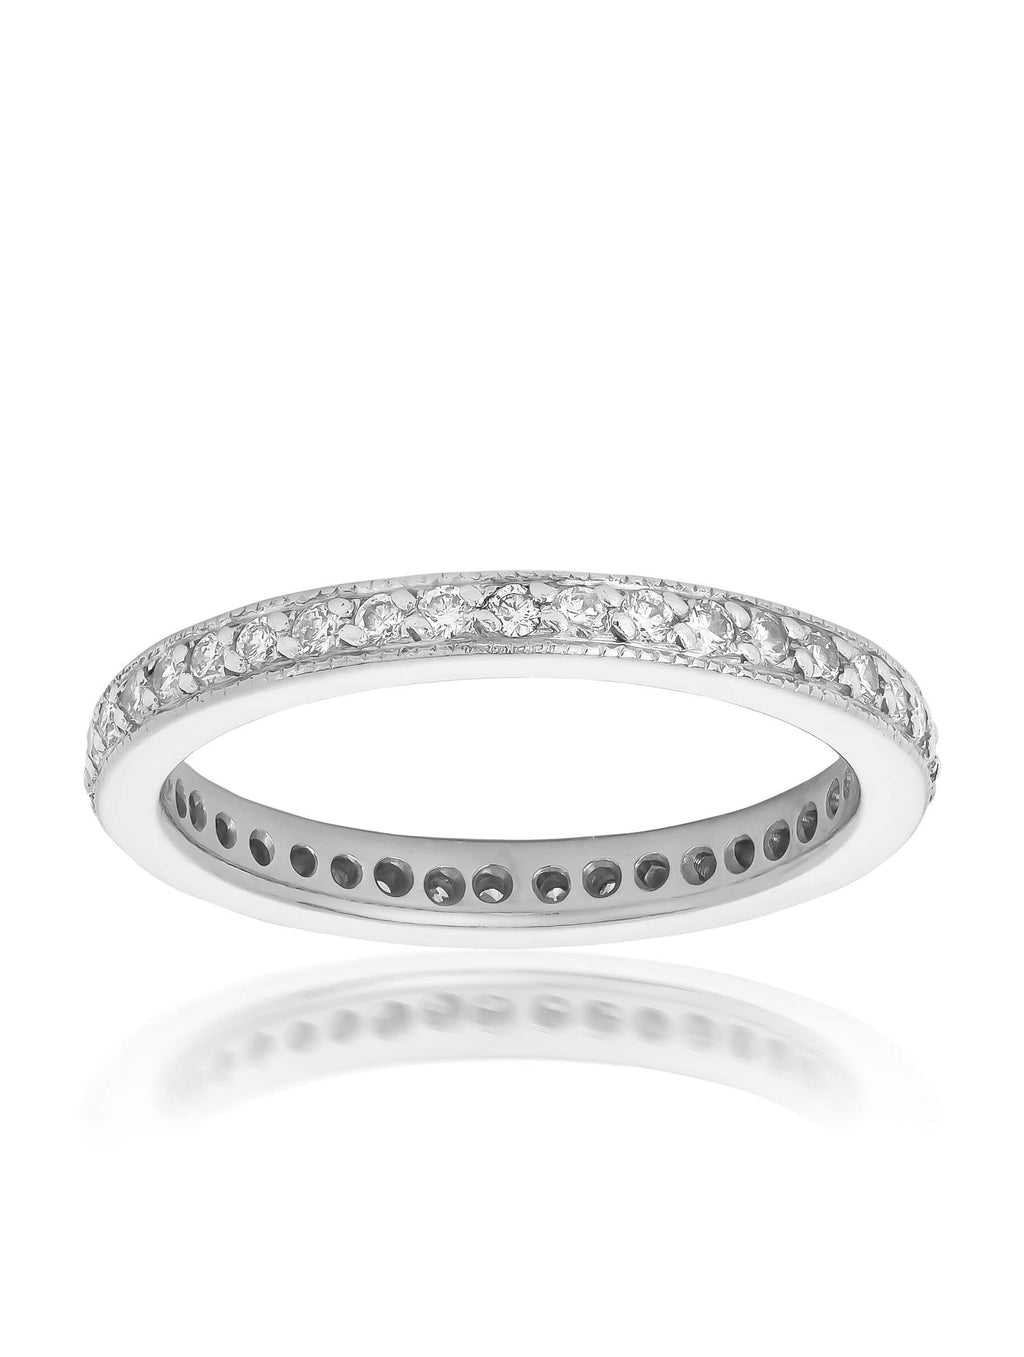 Full Circle Bead Set Round Brilliant Cut Diamond Ring